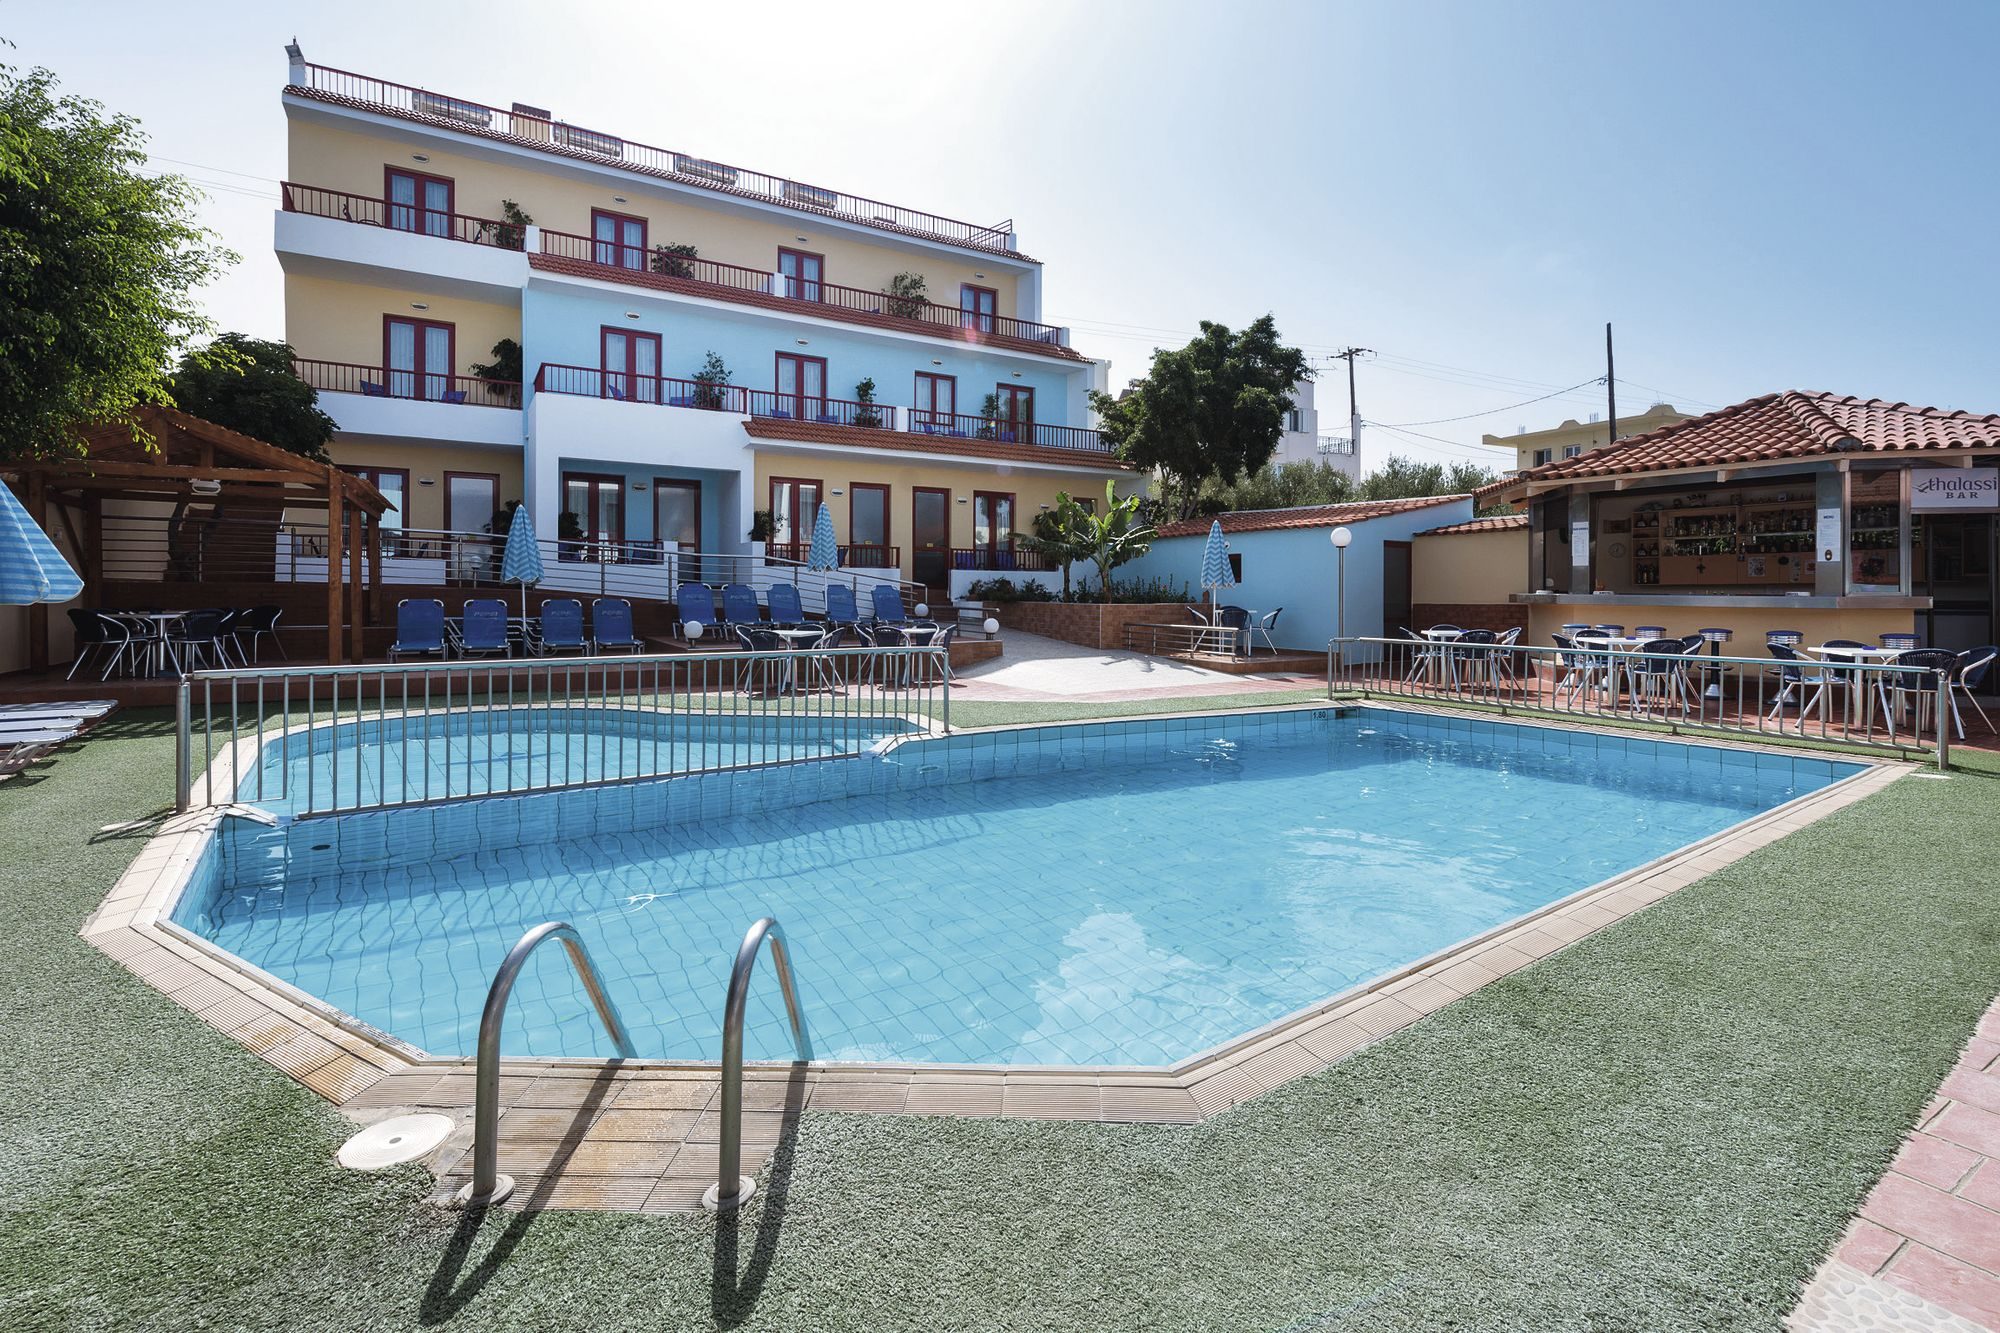 Holiday to Thalassi Hotel in SFAKAKI (GREECE) for 4 nights (HB) departing from birmingham on 03 May